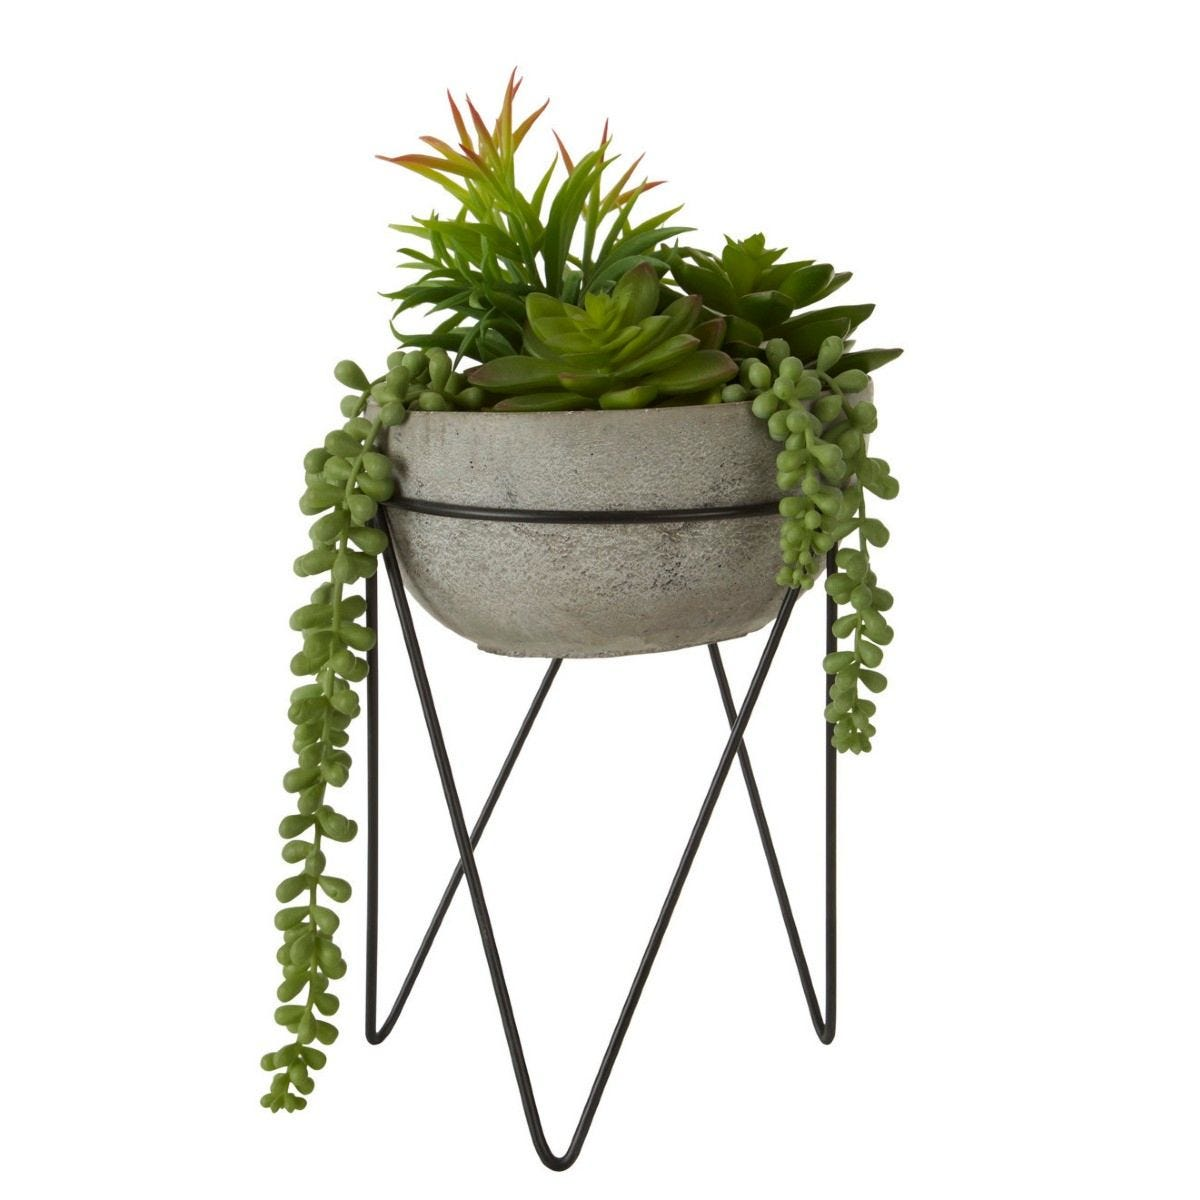 Mixed Succulent Grey Cement Pot with a Metal Stand